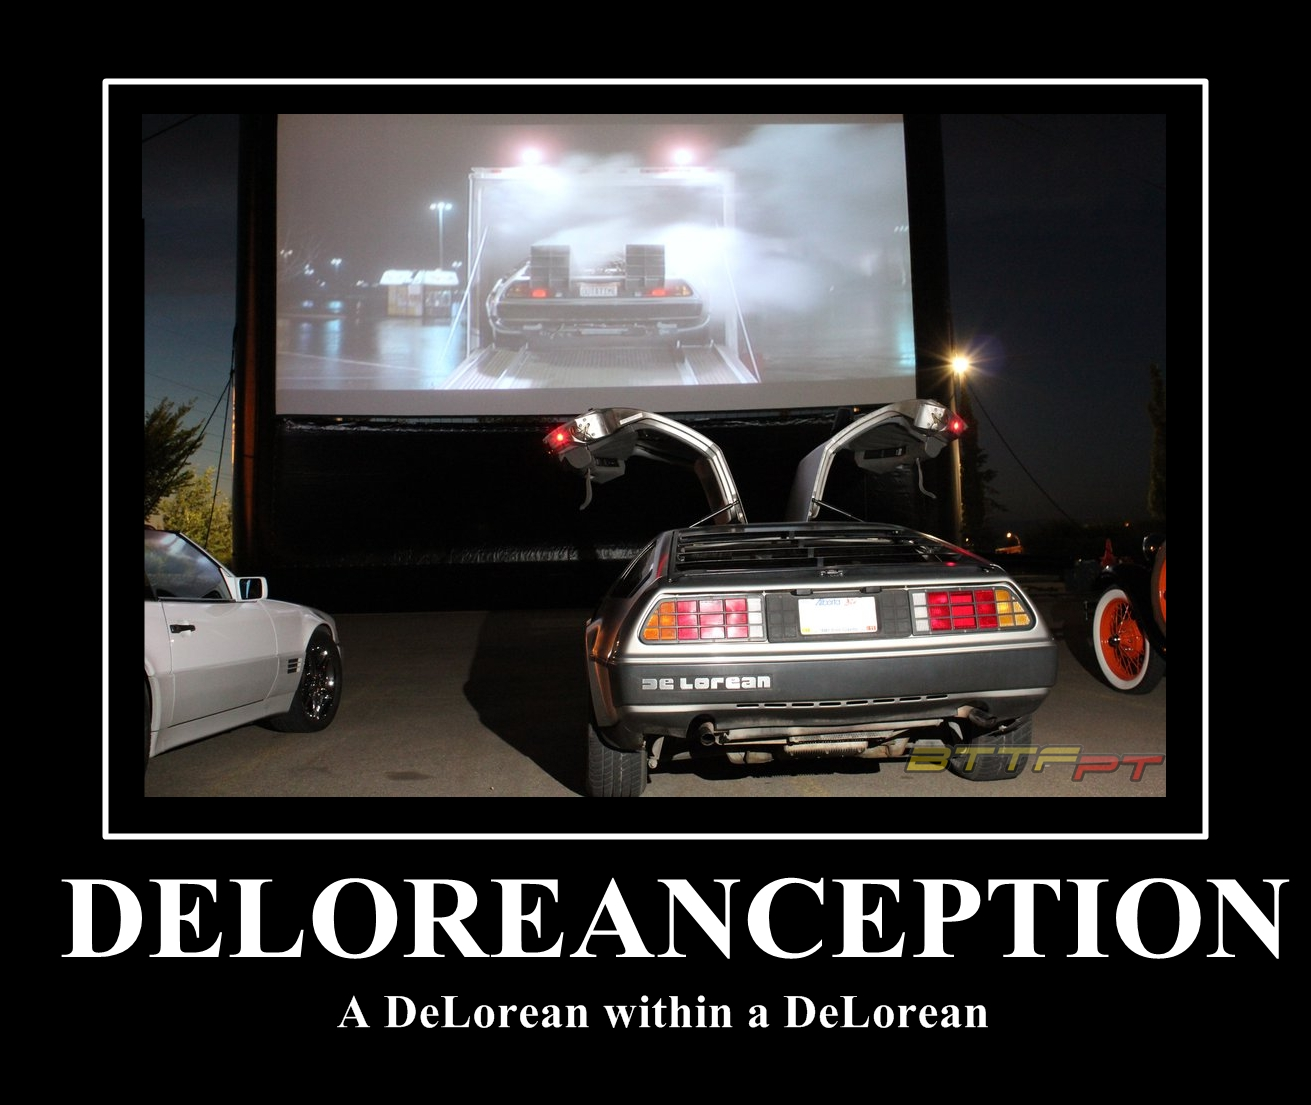 DeLoreanception